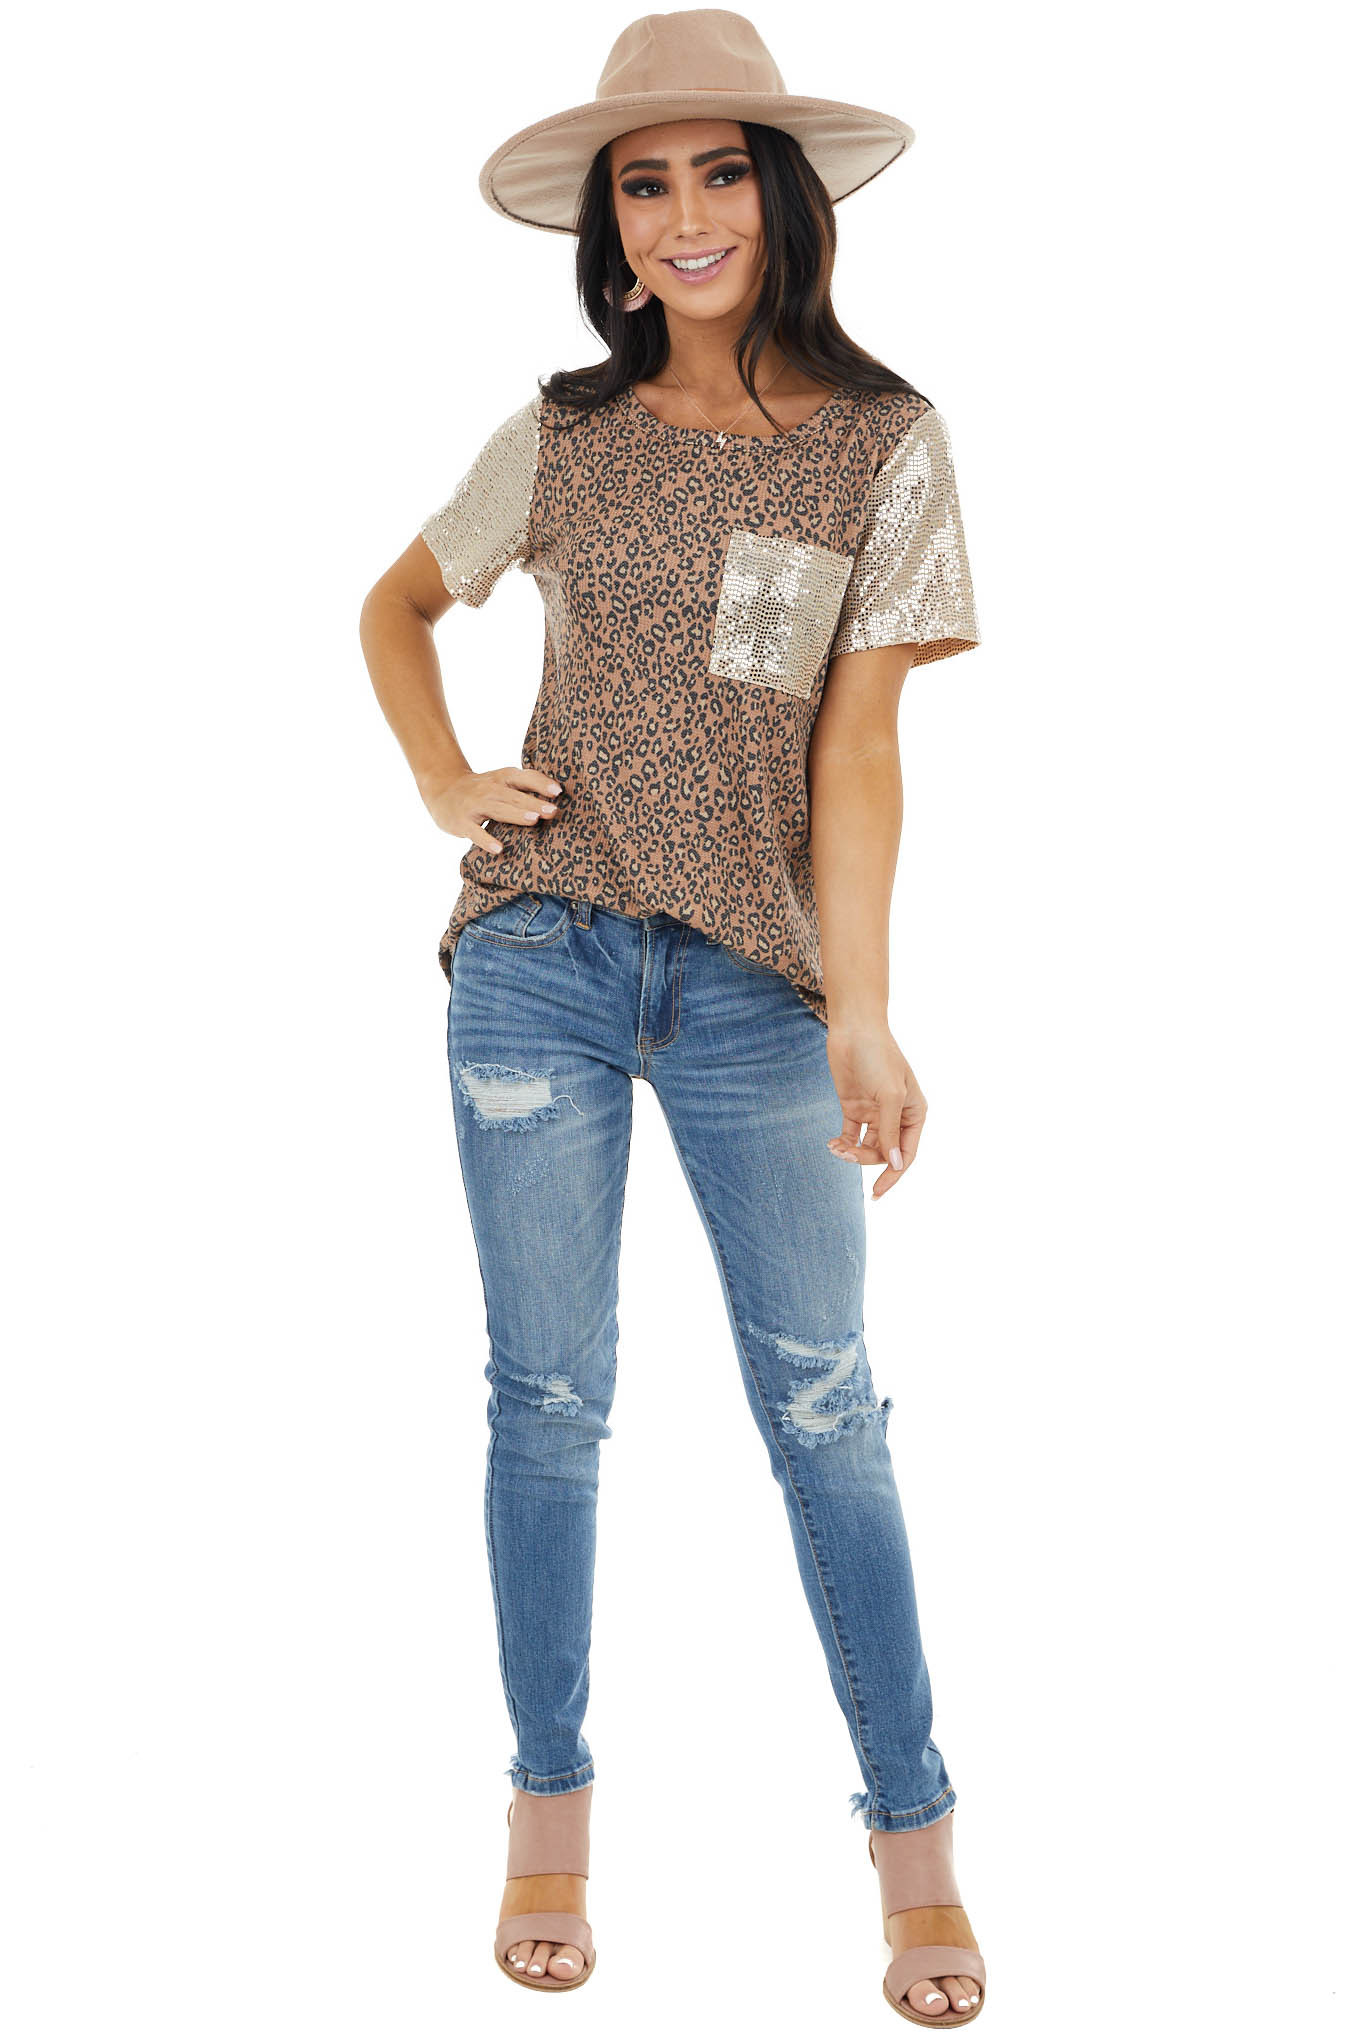 Camel Leopard Print Top with Sequin Sleeves and Pocket